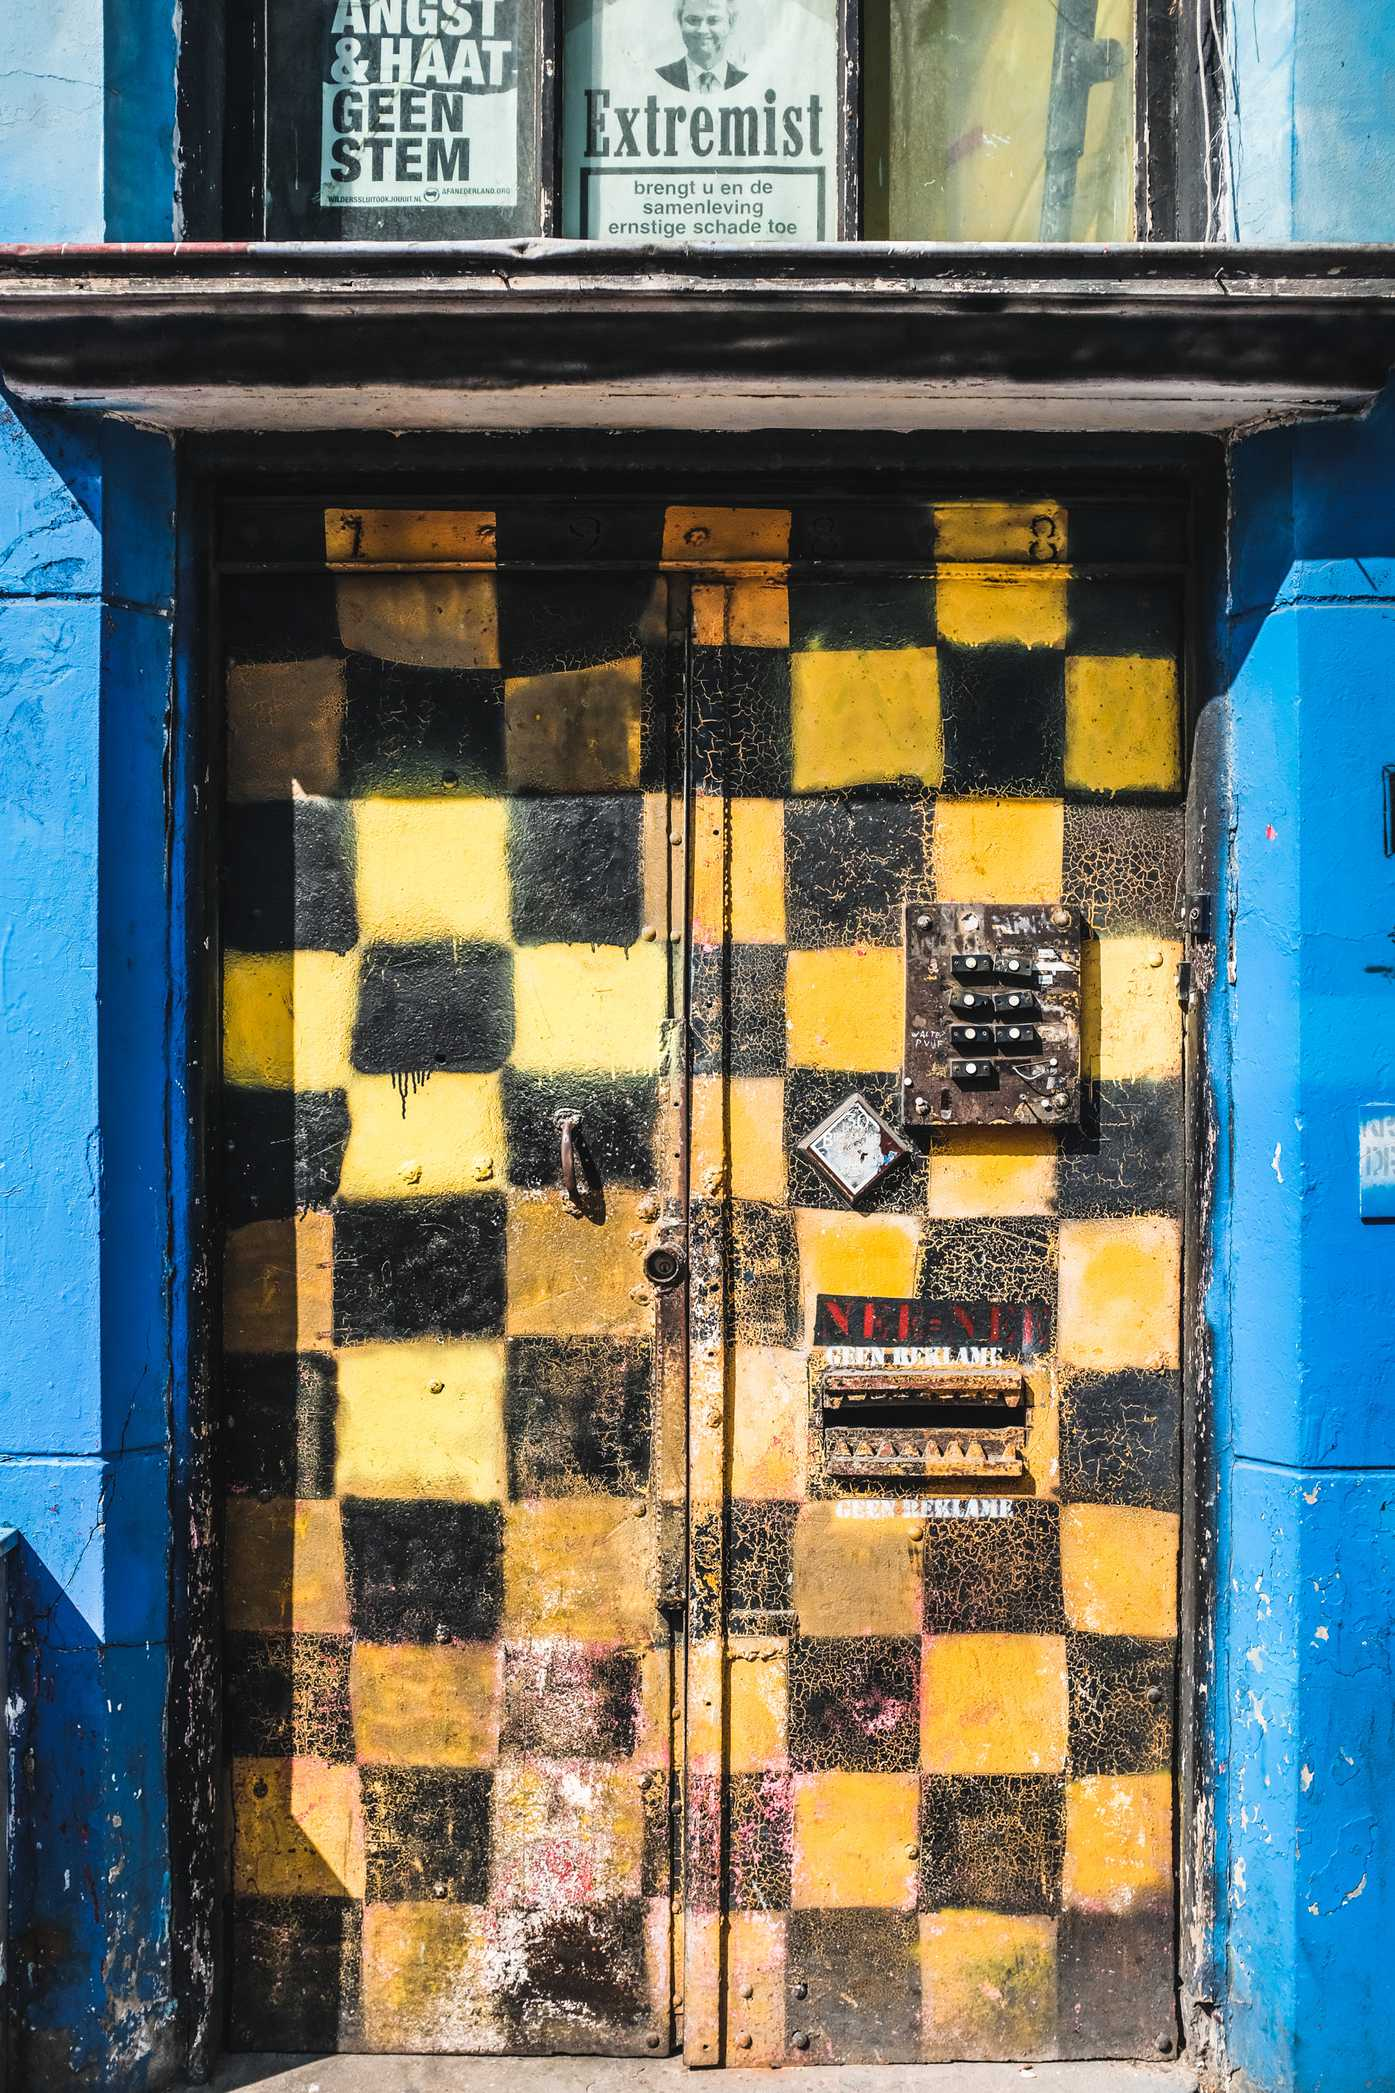 A door with a yellow-and-black checkboard pattern